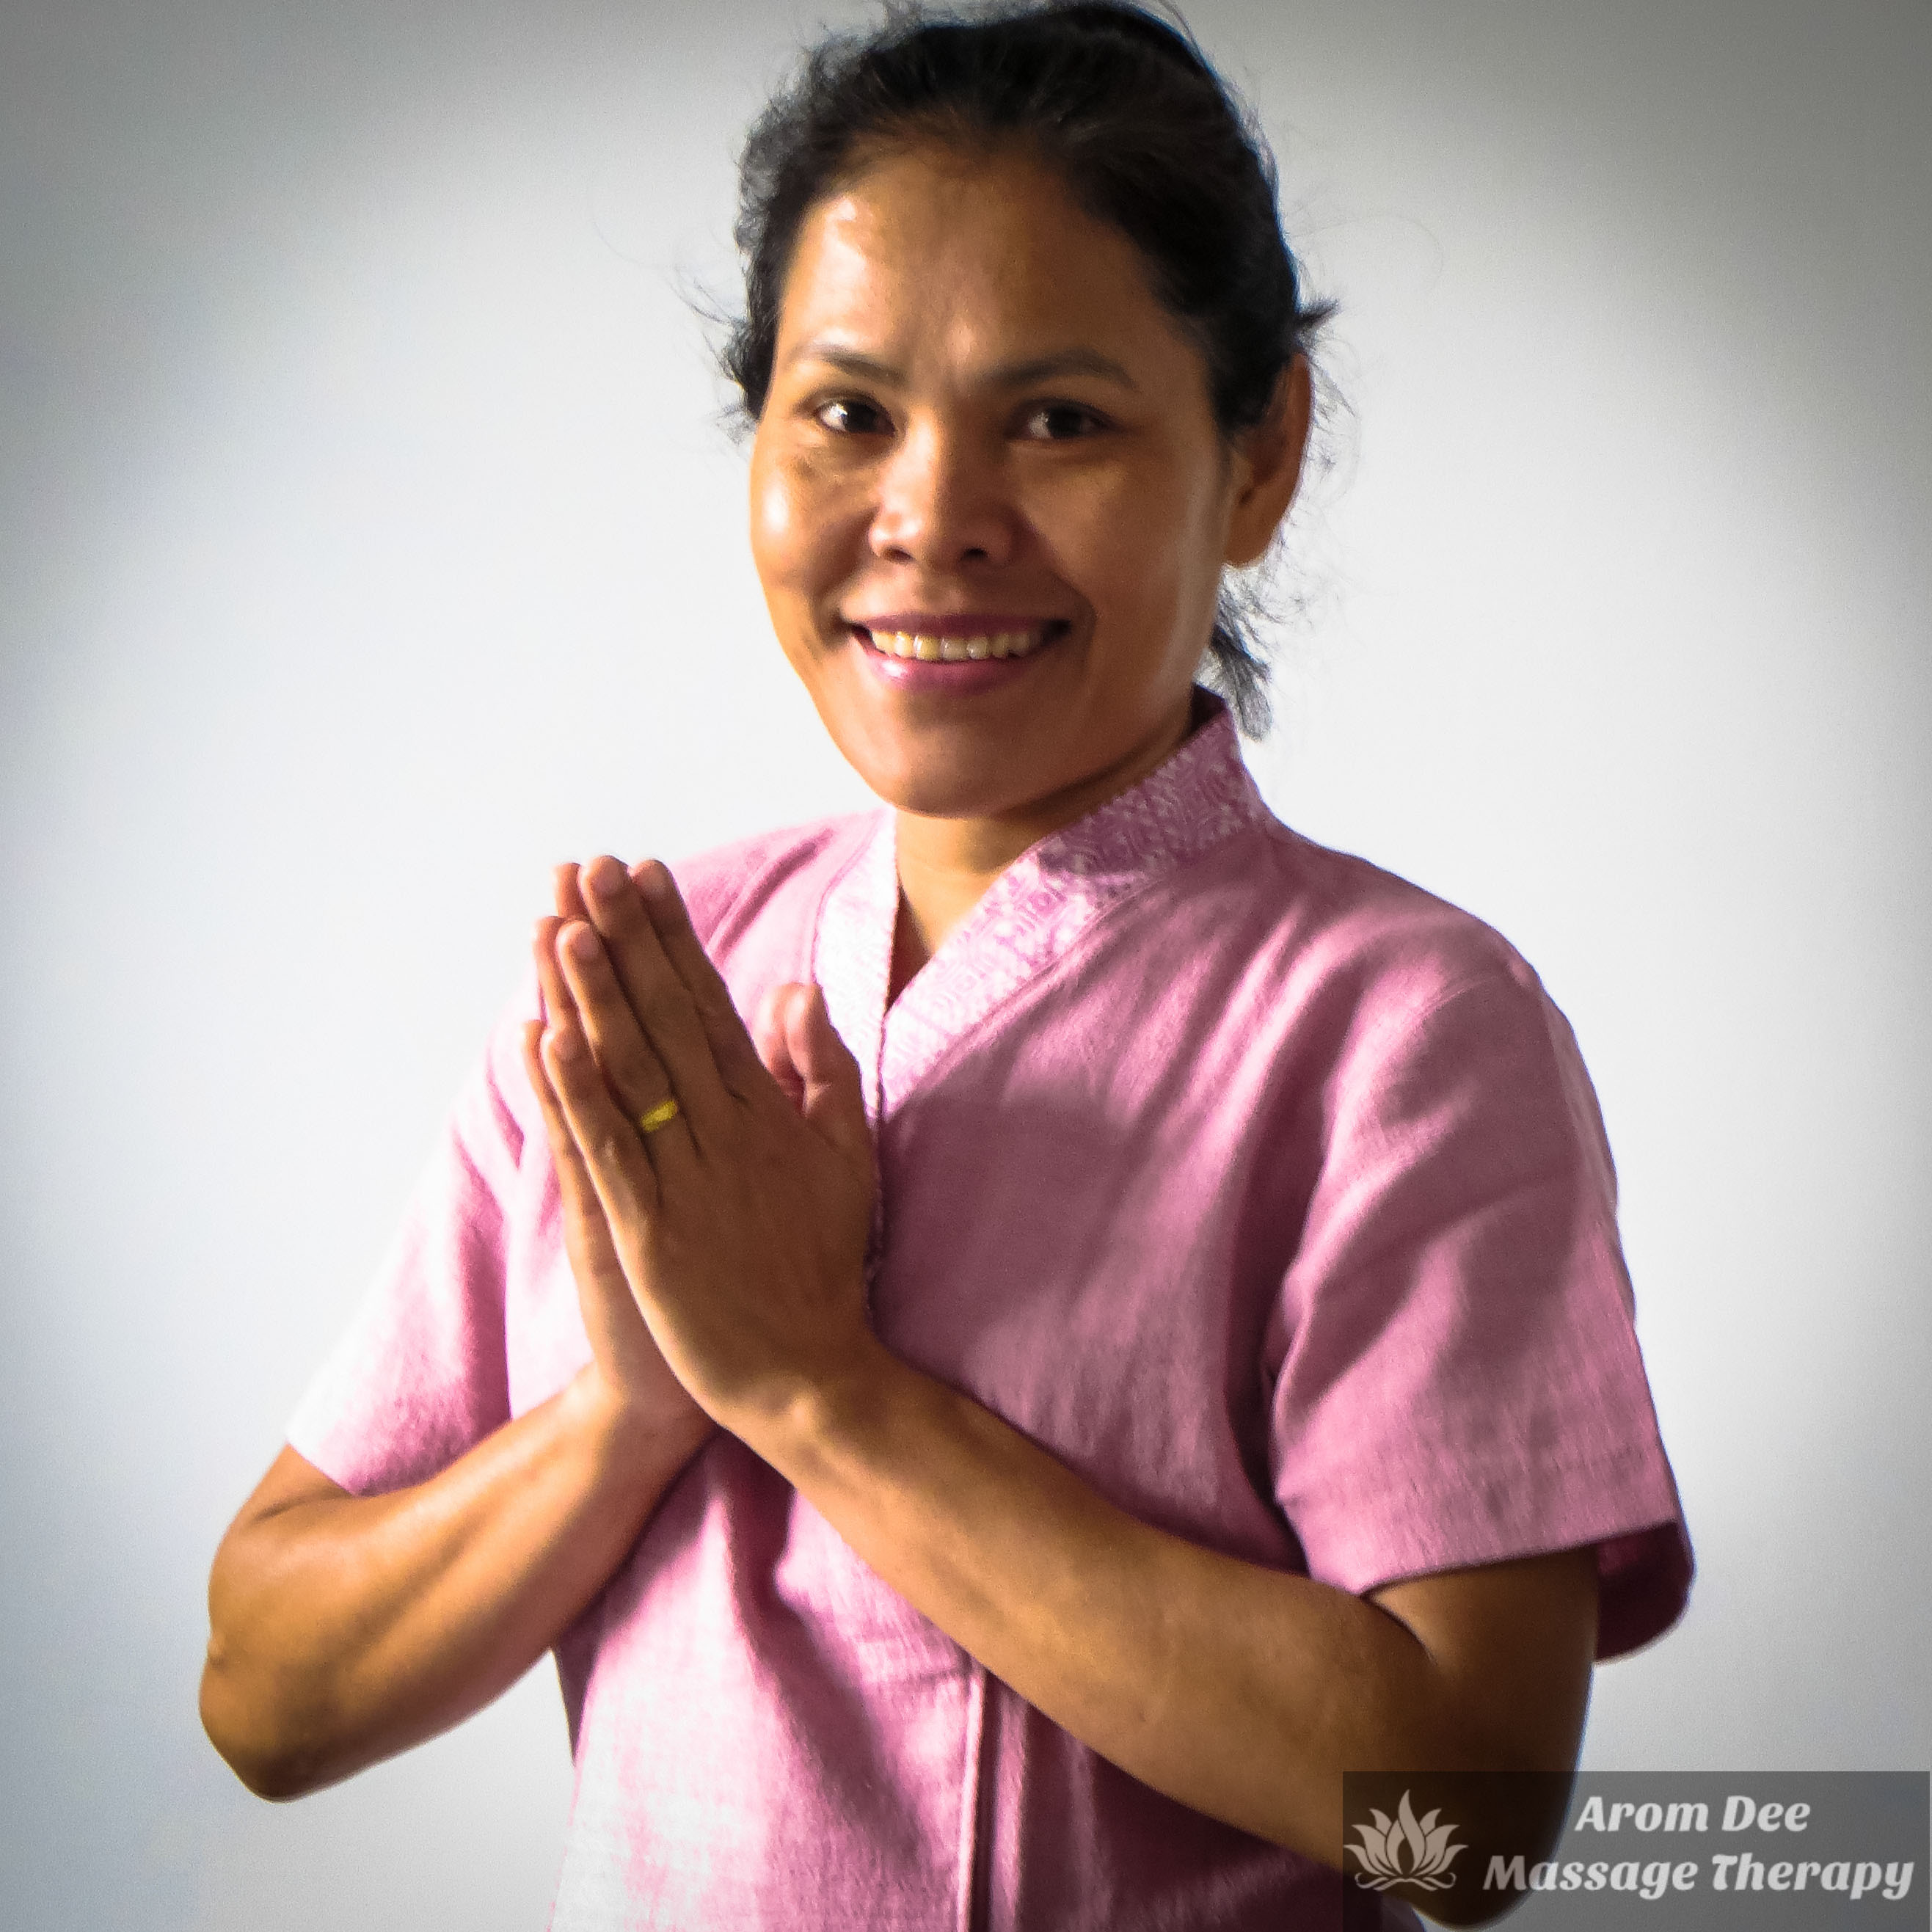 Massuse wearing pink traditional massage therapist's tunic holding hands together in Thai Wai